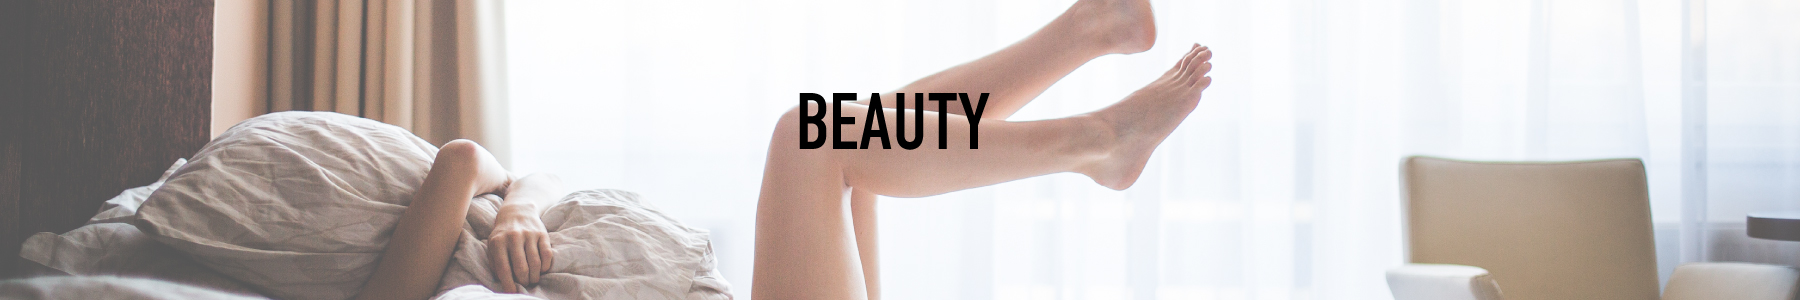 Pc beauty